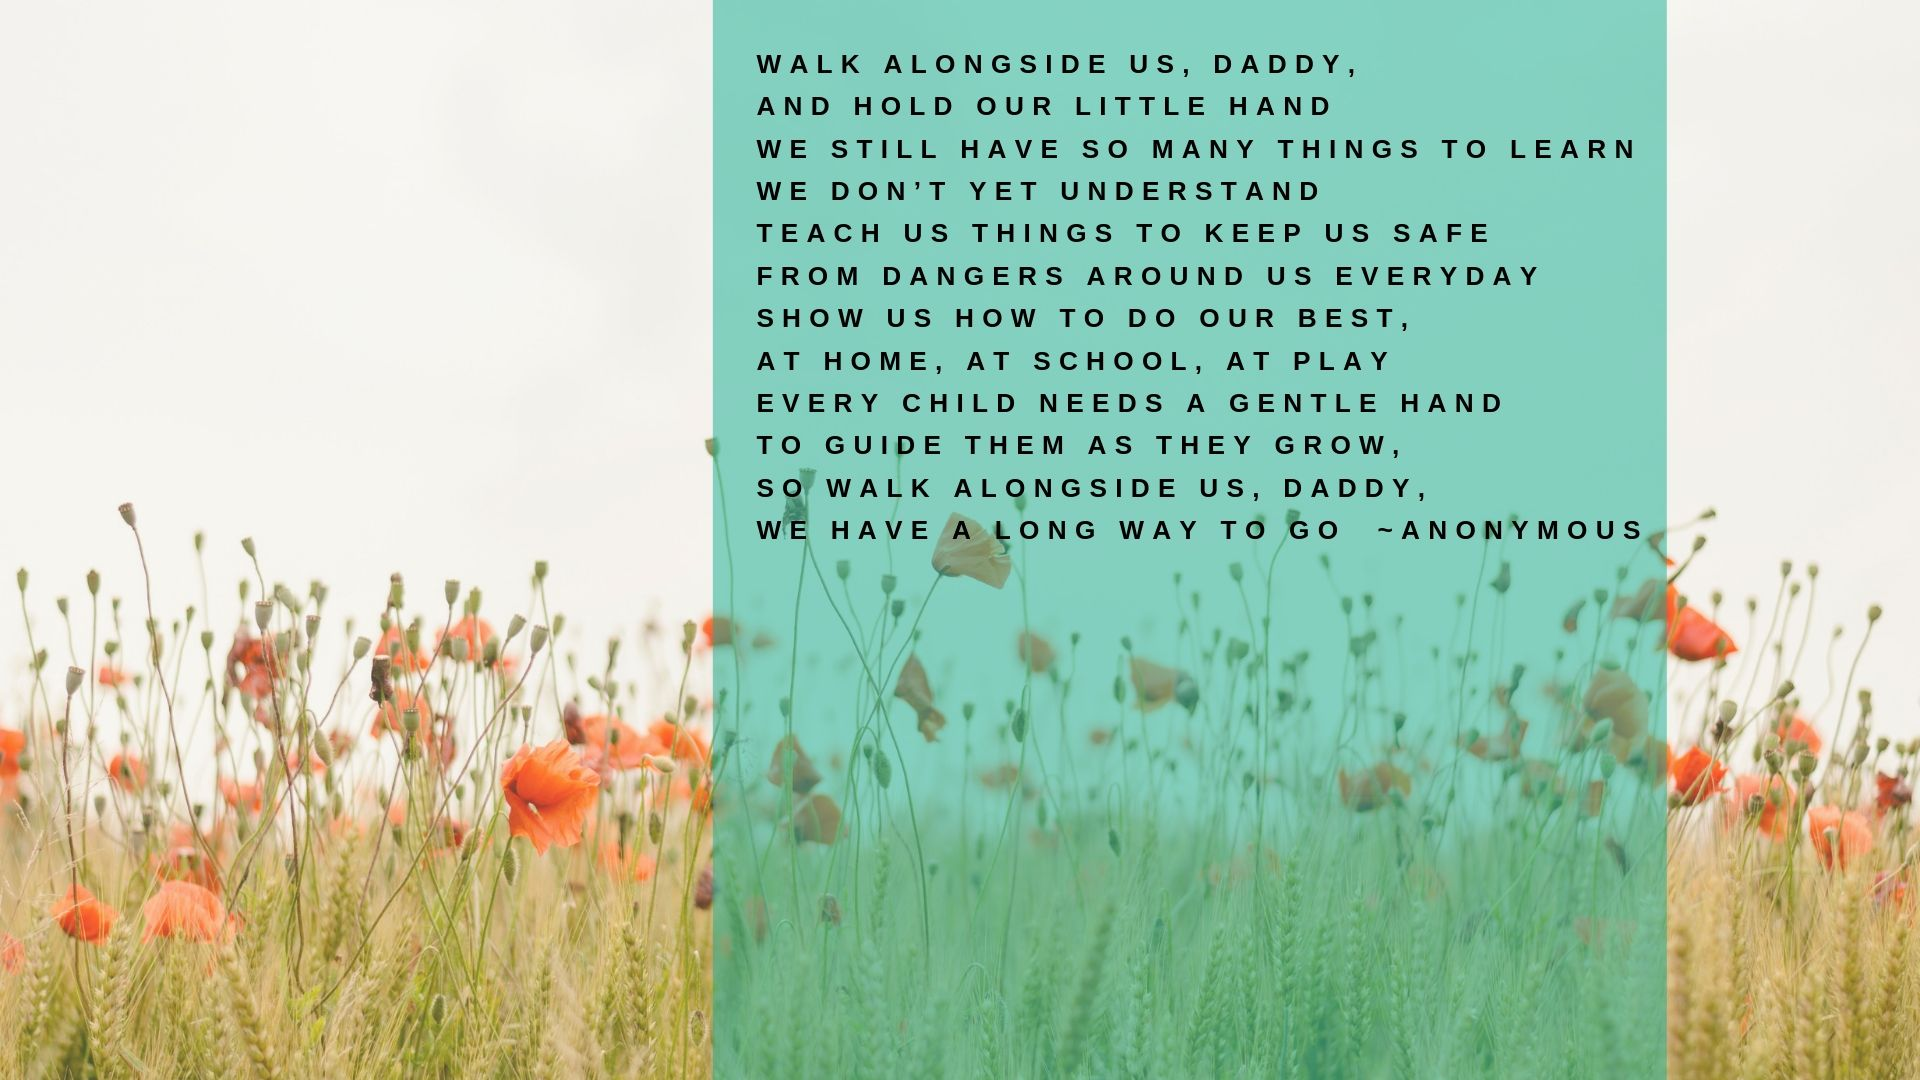 Walk alongside us, Daddy And hold our little hand We still have so many things to learn We don't yet understand Teach us things to keep us safe From dangers about us everyday Show us how to do our best At home, .jpg